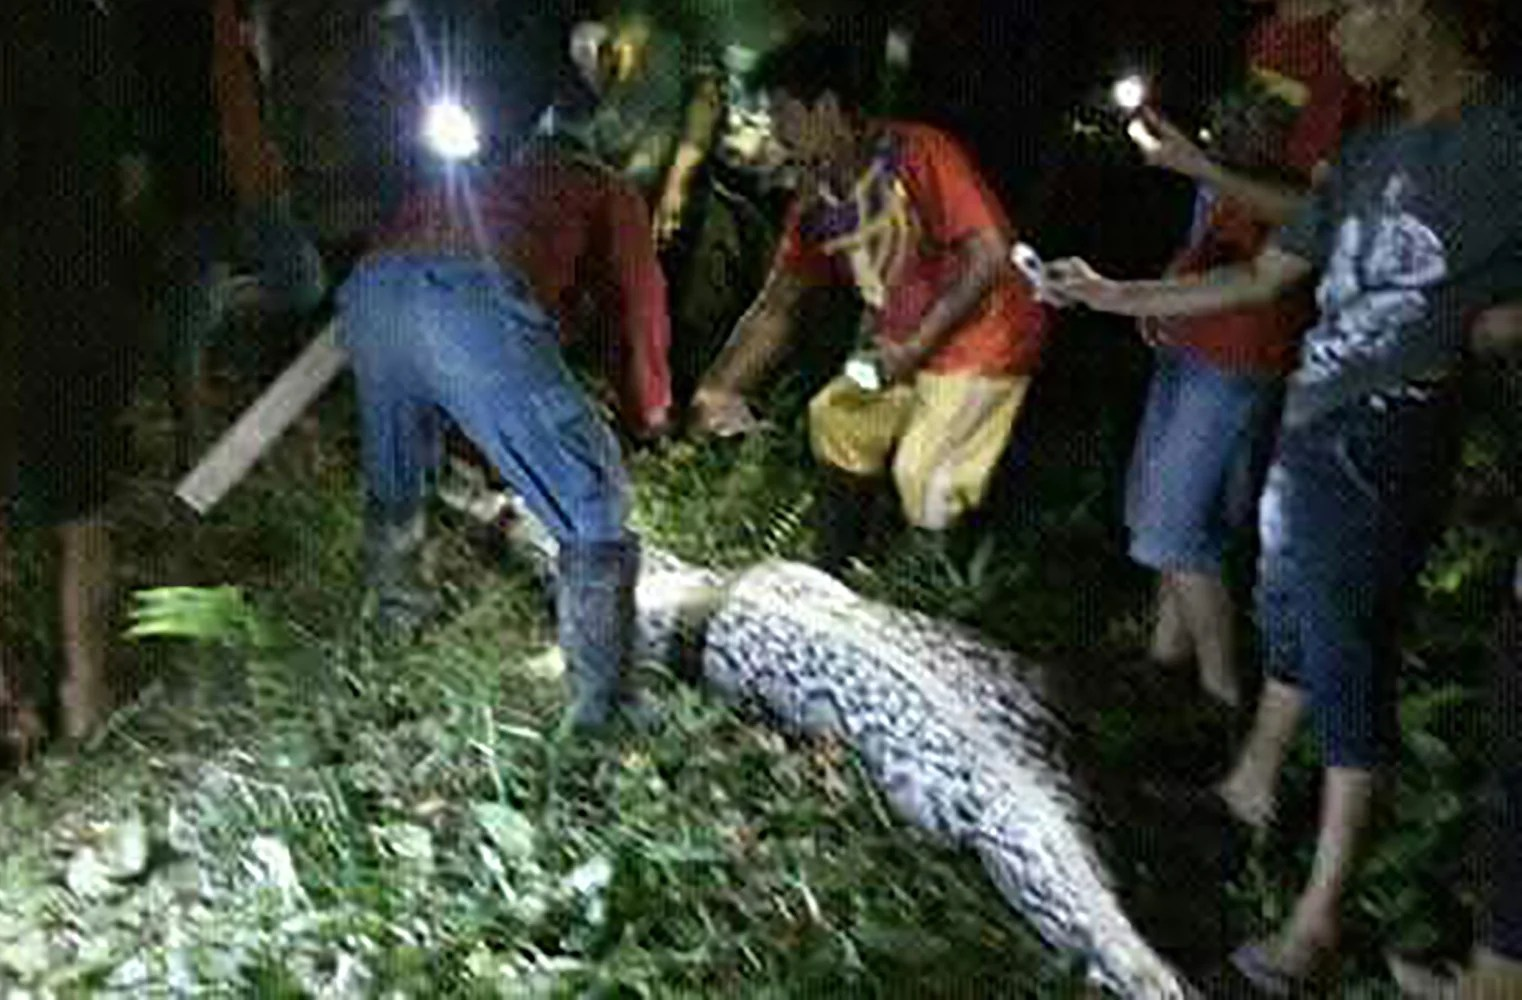 Indonesian Python Swallows Man Whole, Video Shows - NBC News